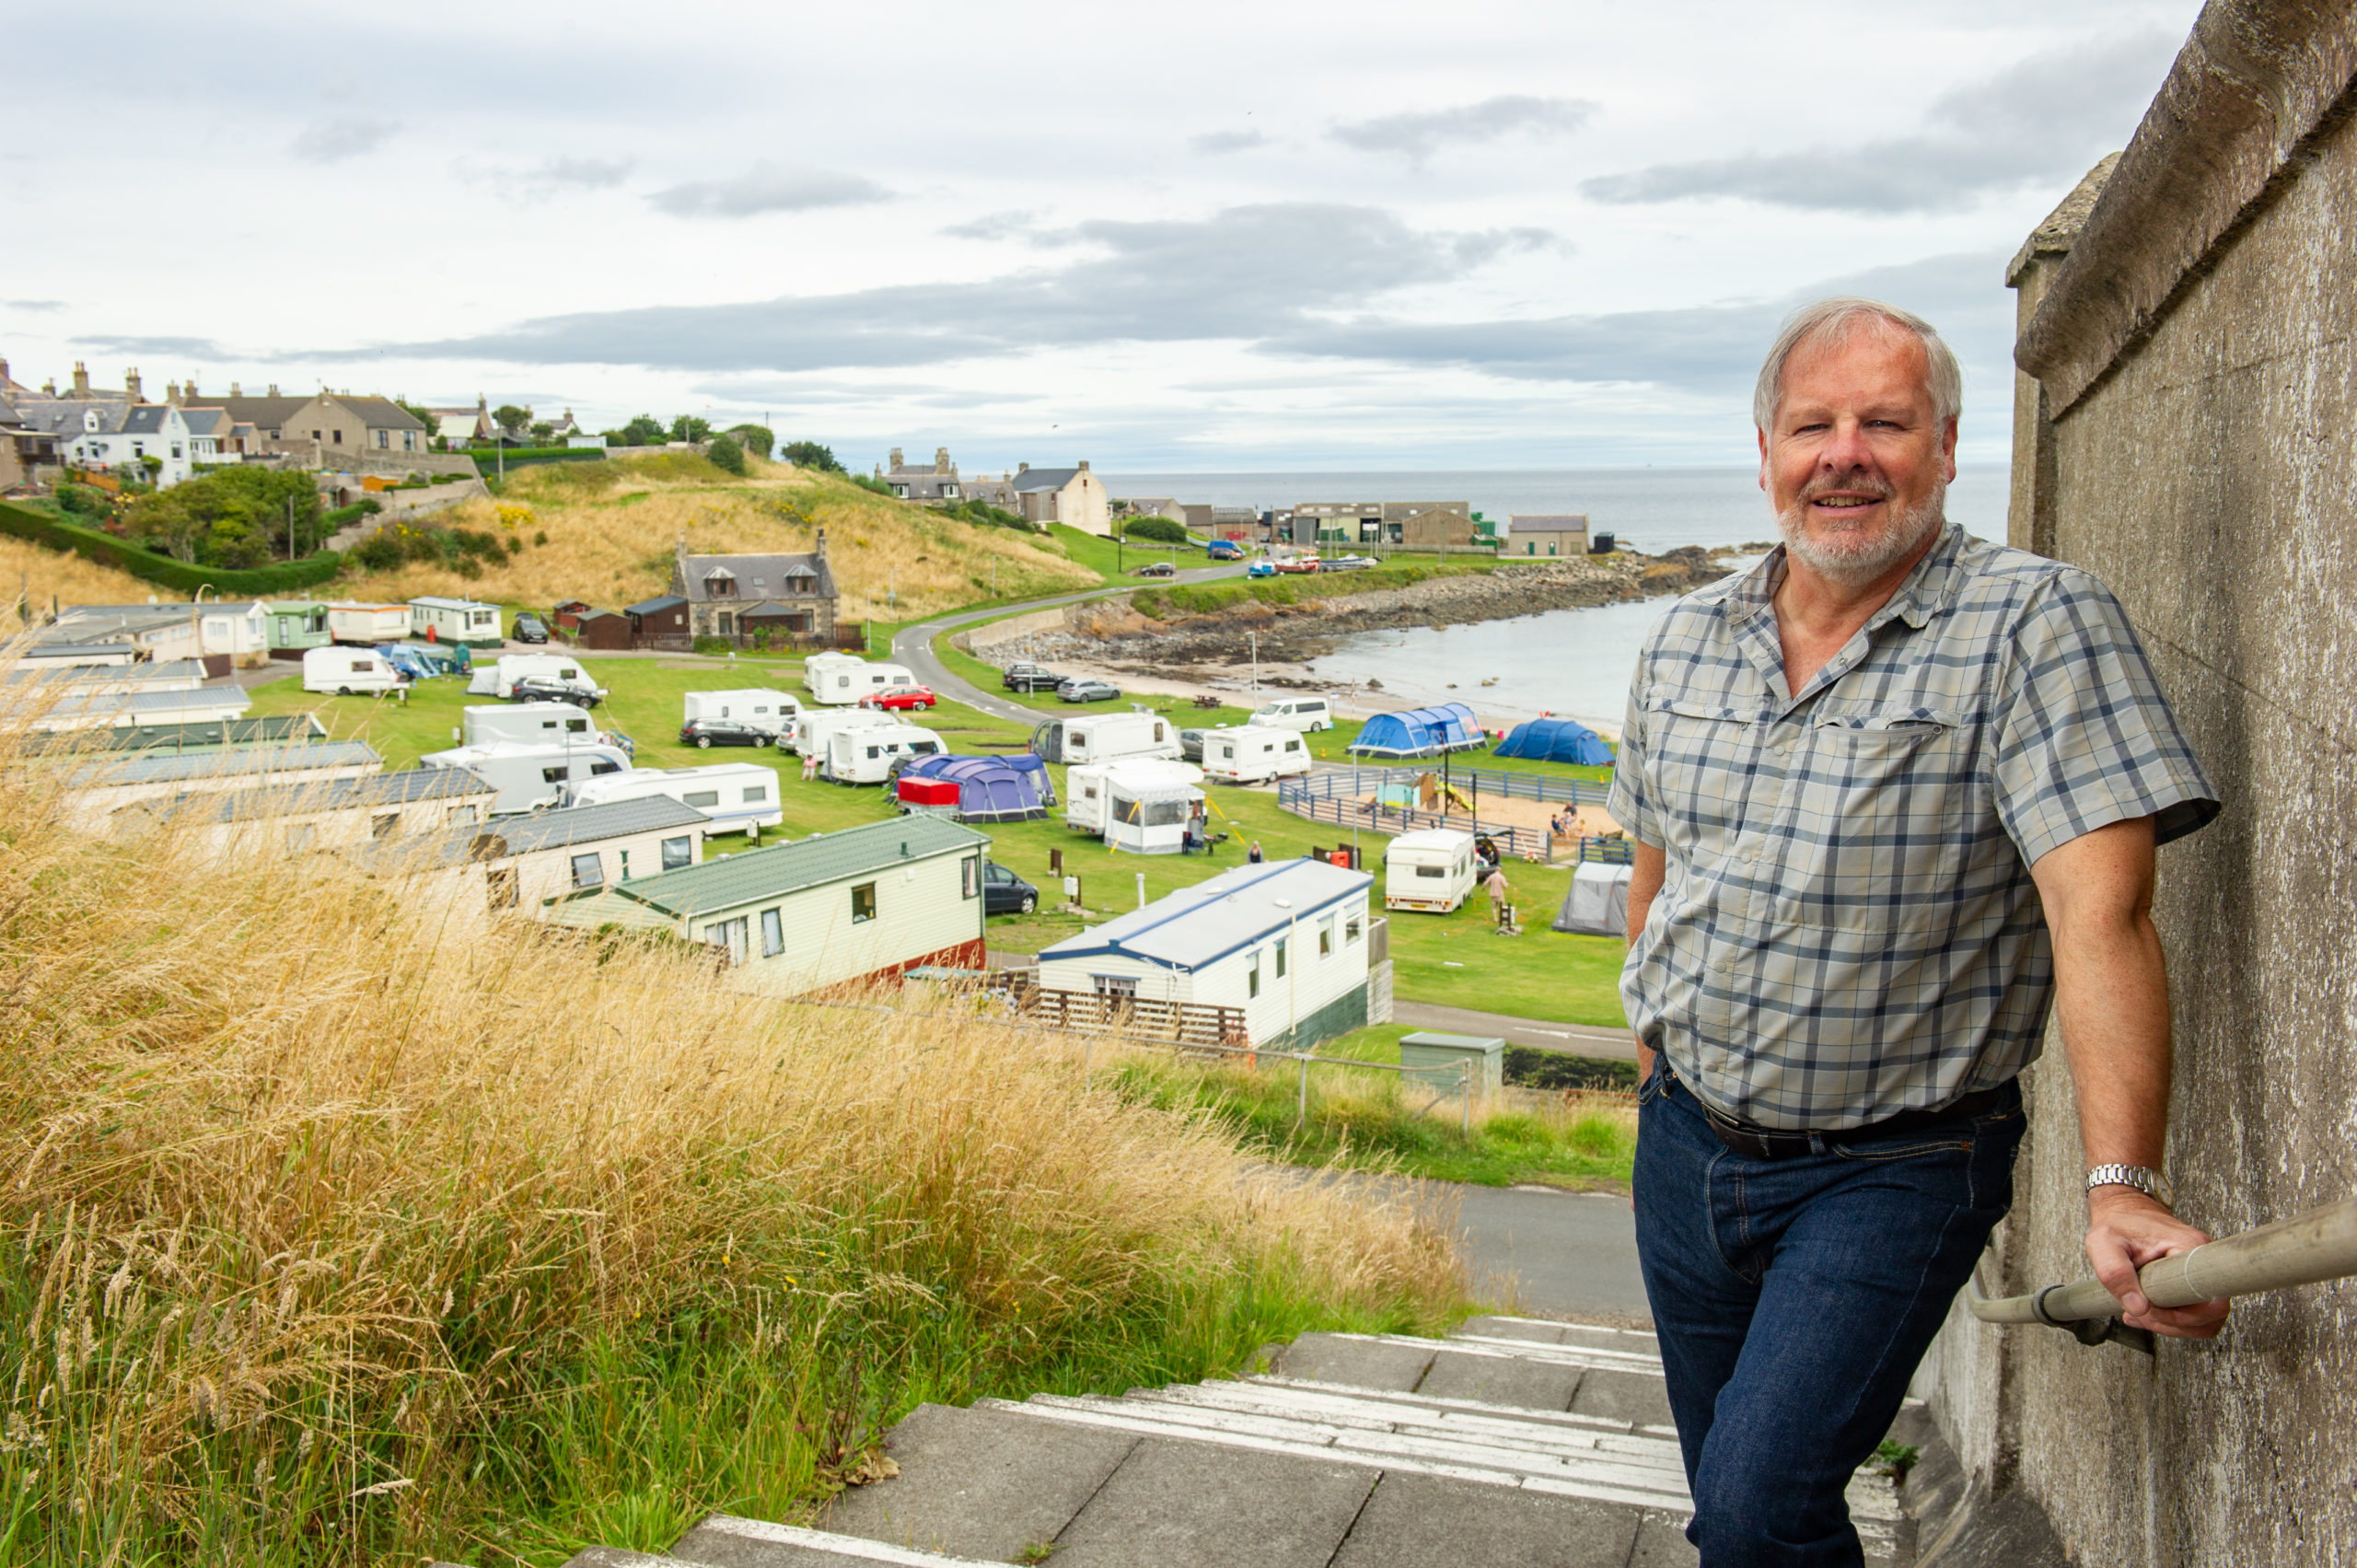 Pictures by JASON HEDGES     05.08.2020 - Councillor John Cox at Portsoy over looking a campsite from the viewpoint at Aird Green. Picture by Jason Hedges